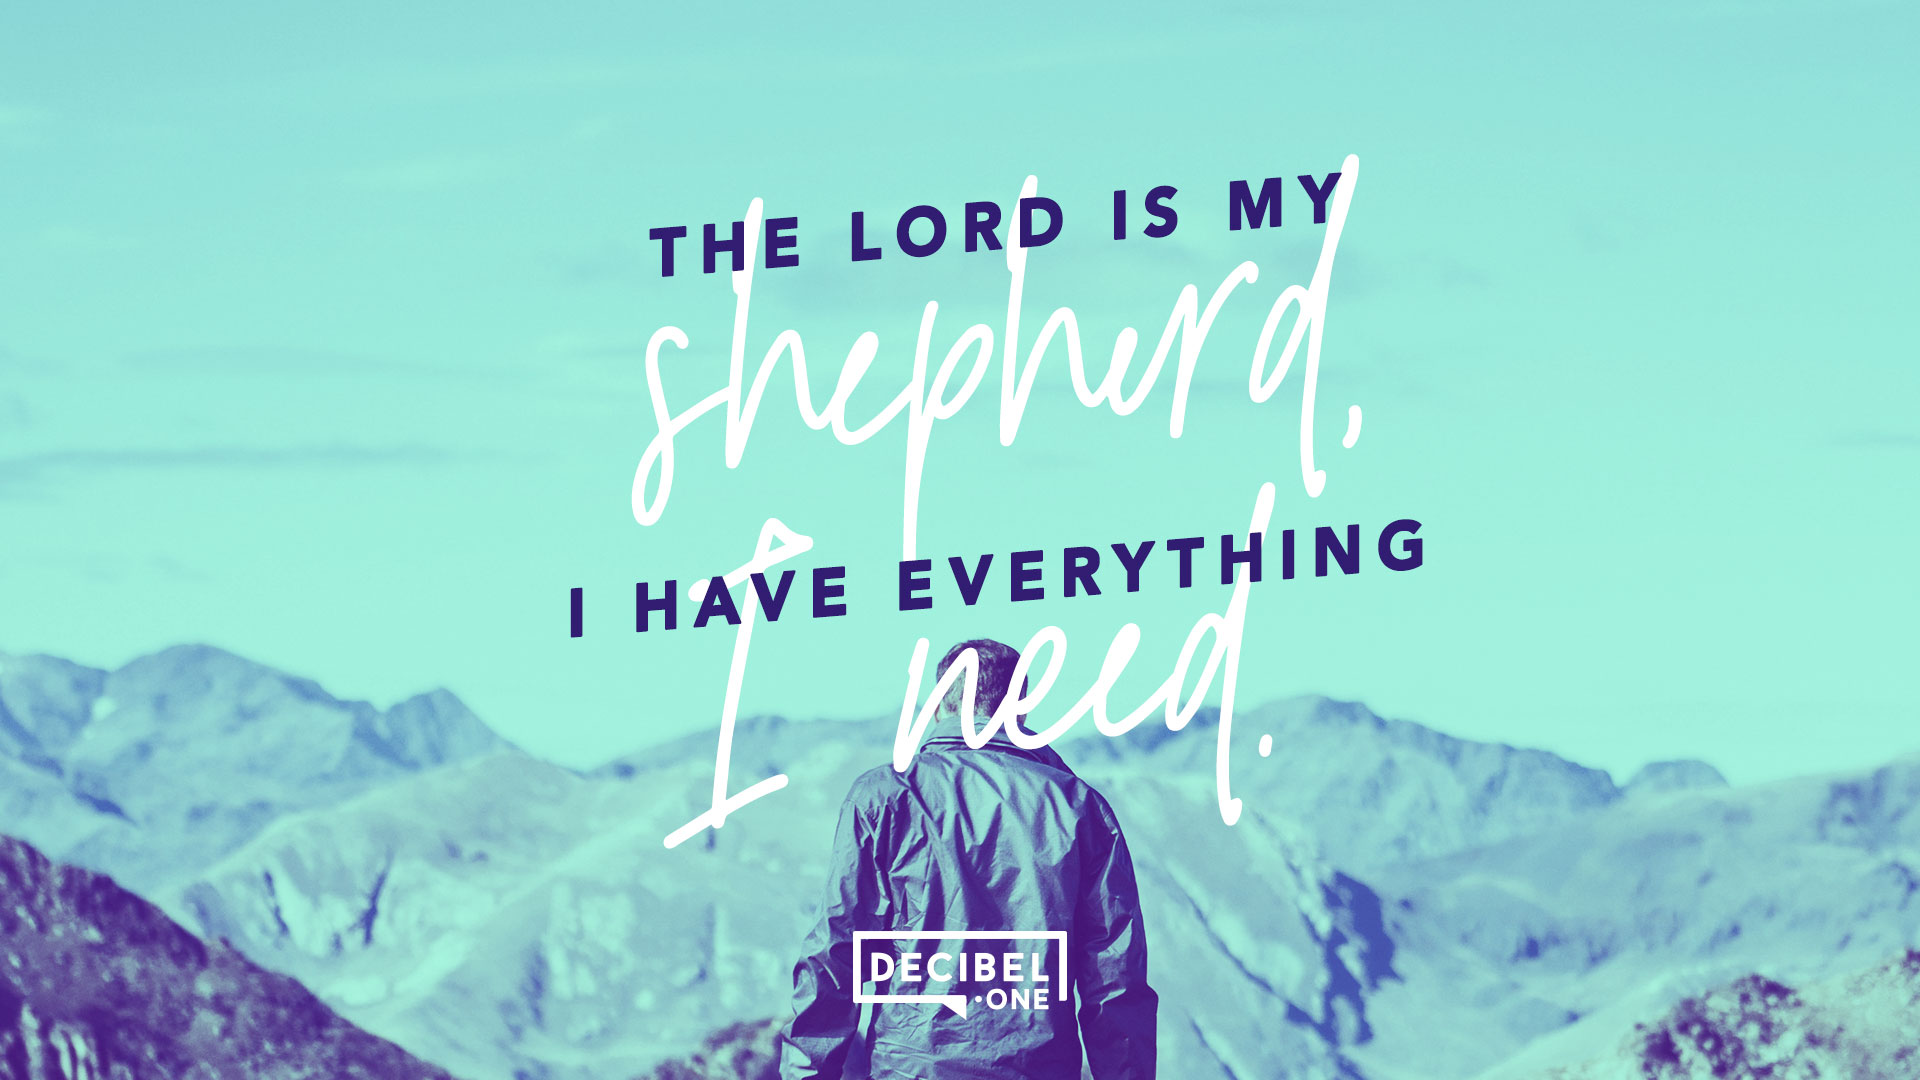 The Lord Is My Shepherd I Have Everything I Need Decibel